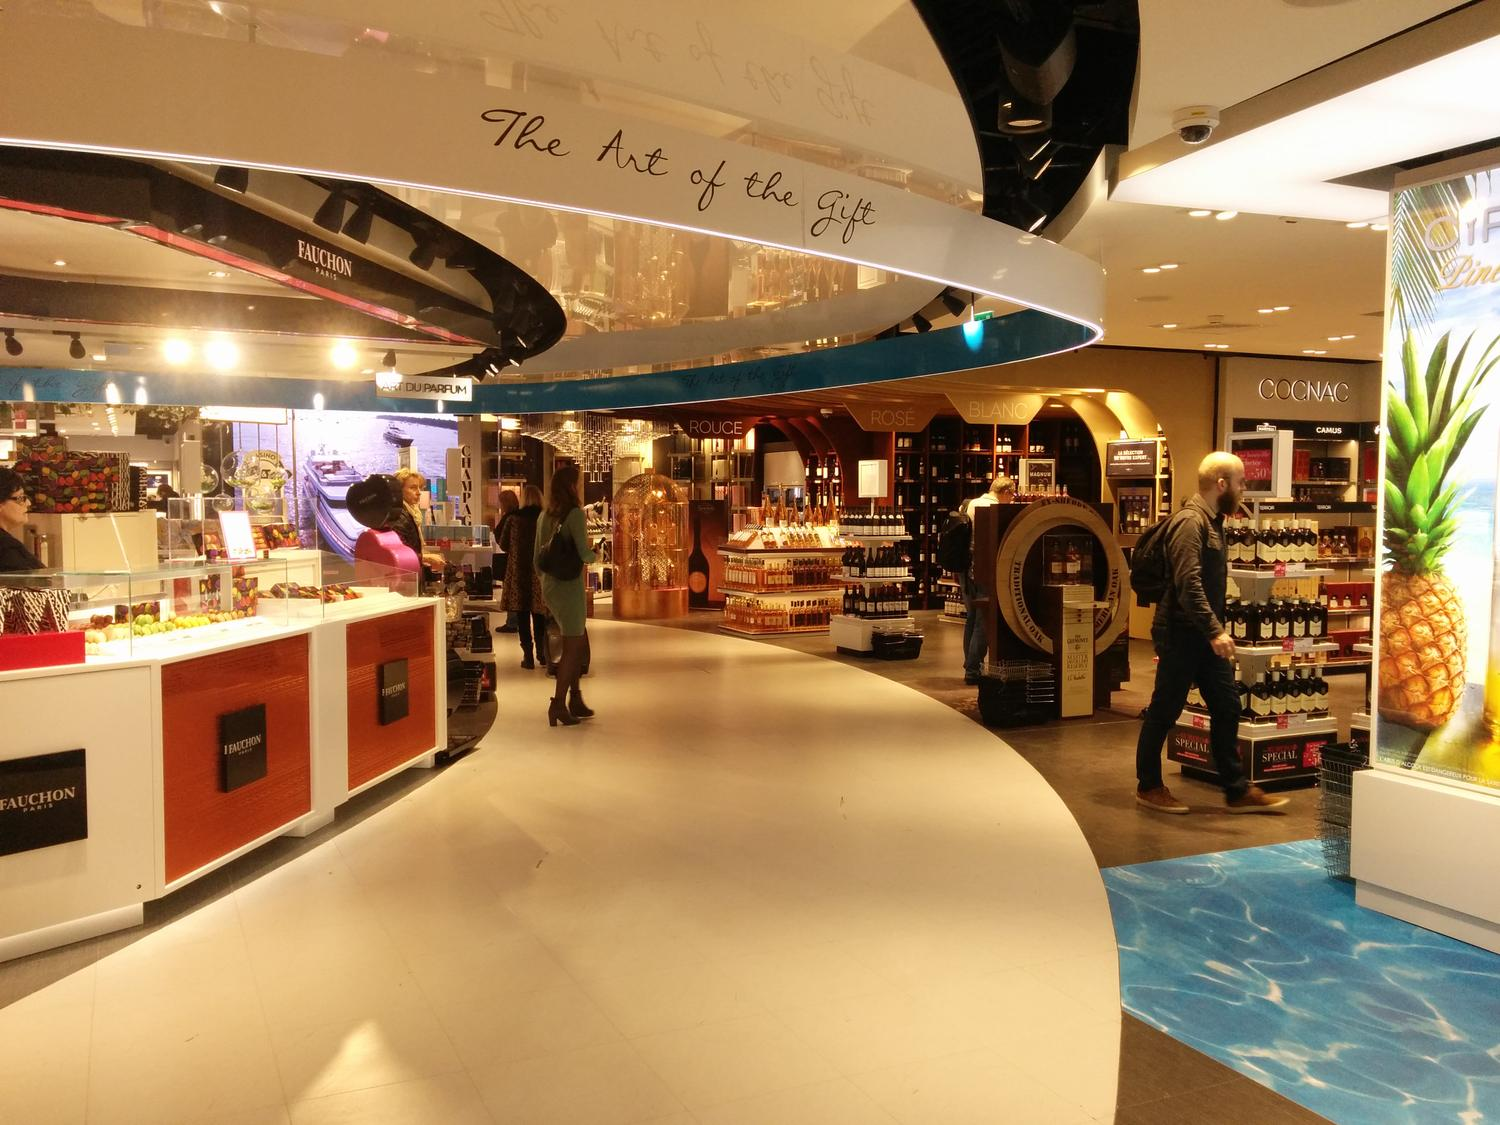 agencement TCE en travel retail